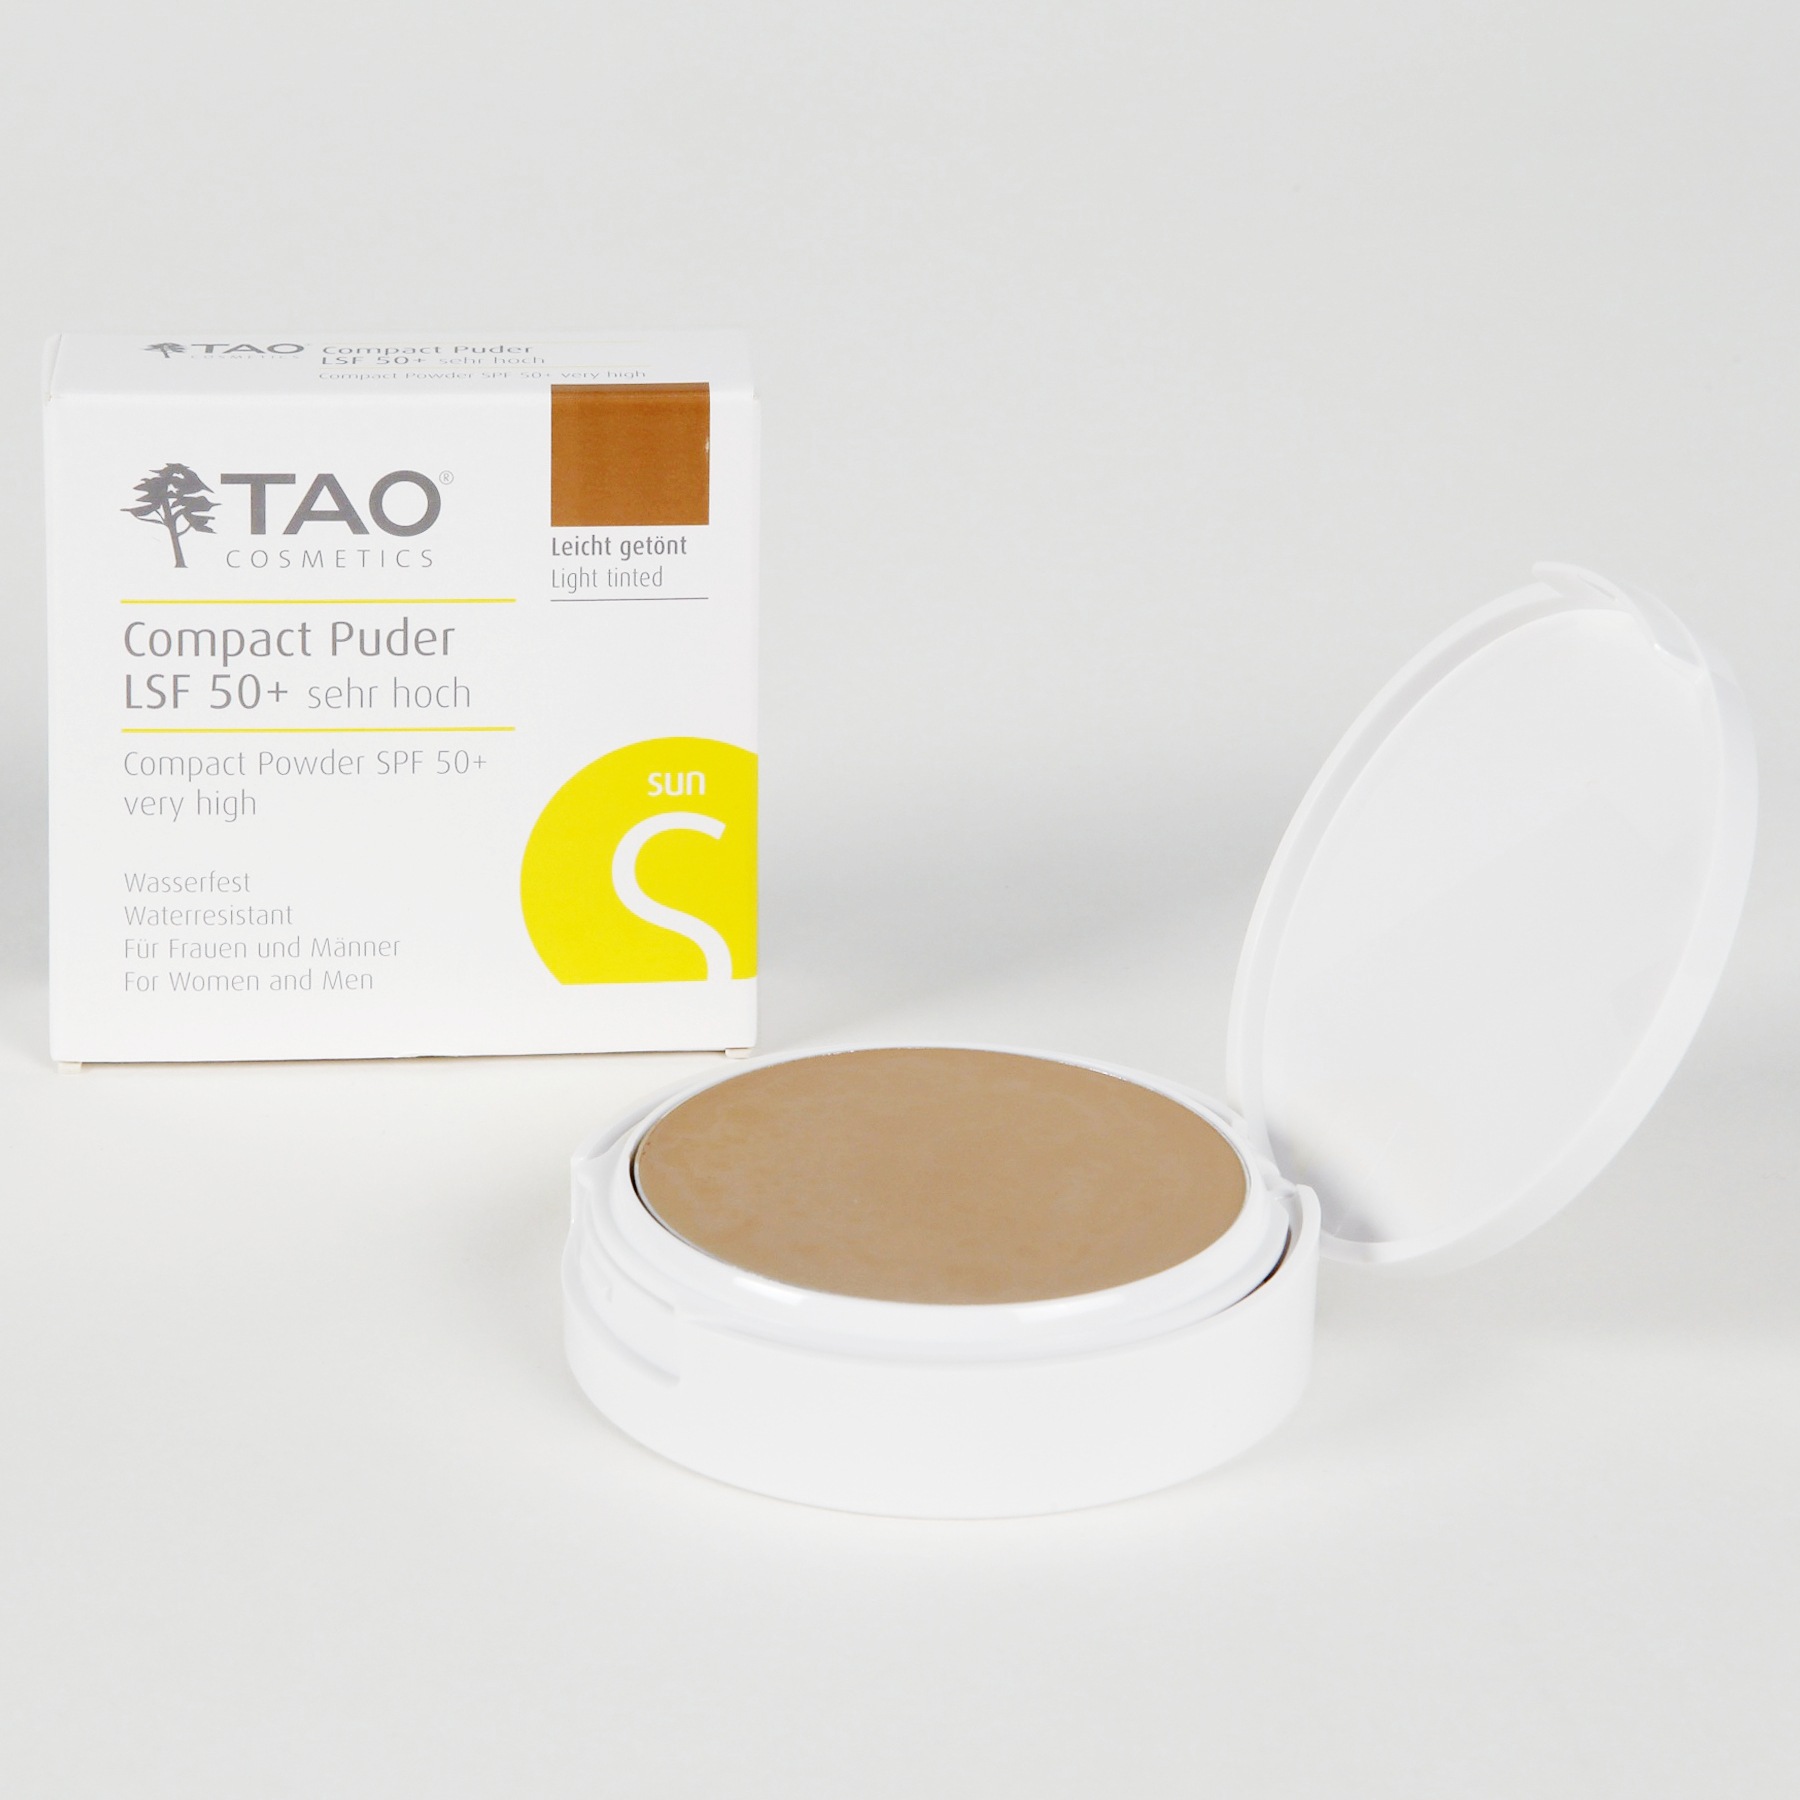 Packung compact Puder